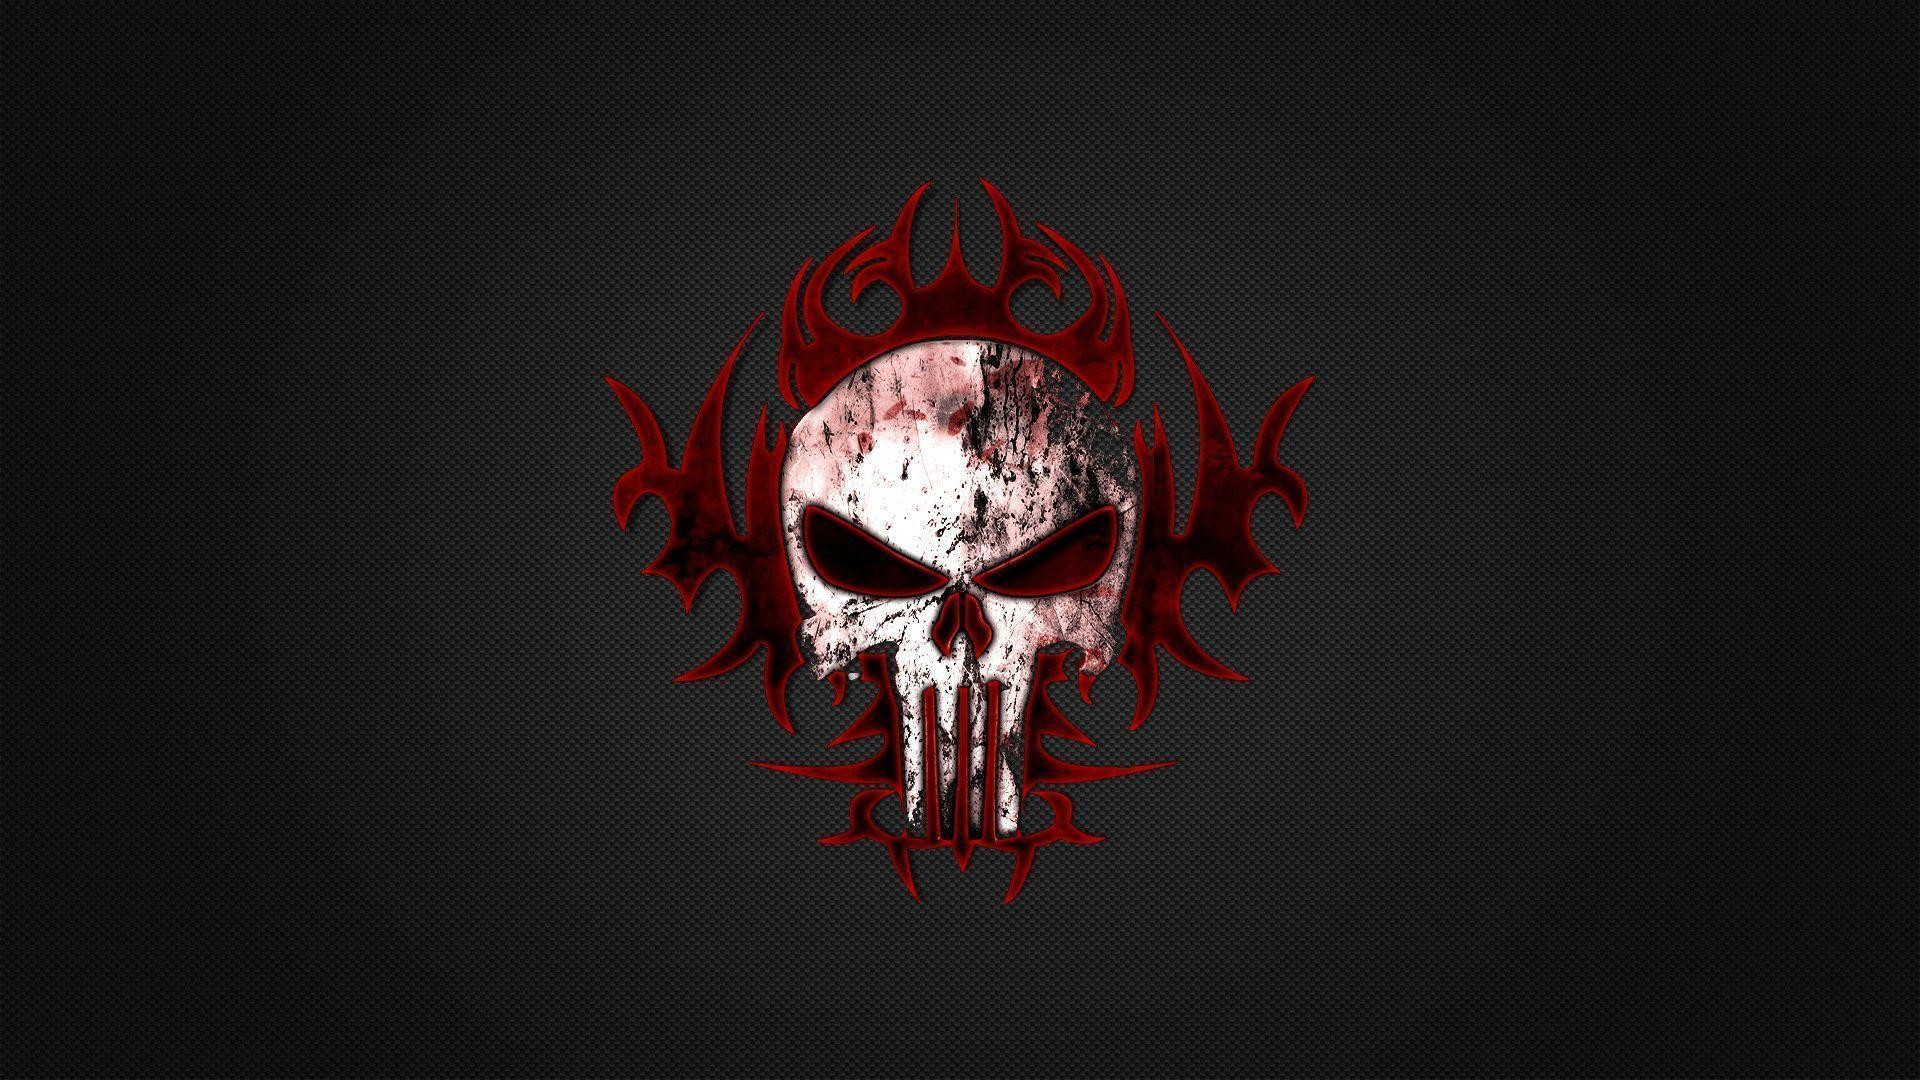 1920x1080 96 Punisher Wallpapers | Punisher Backgrounds Page 2